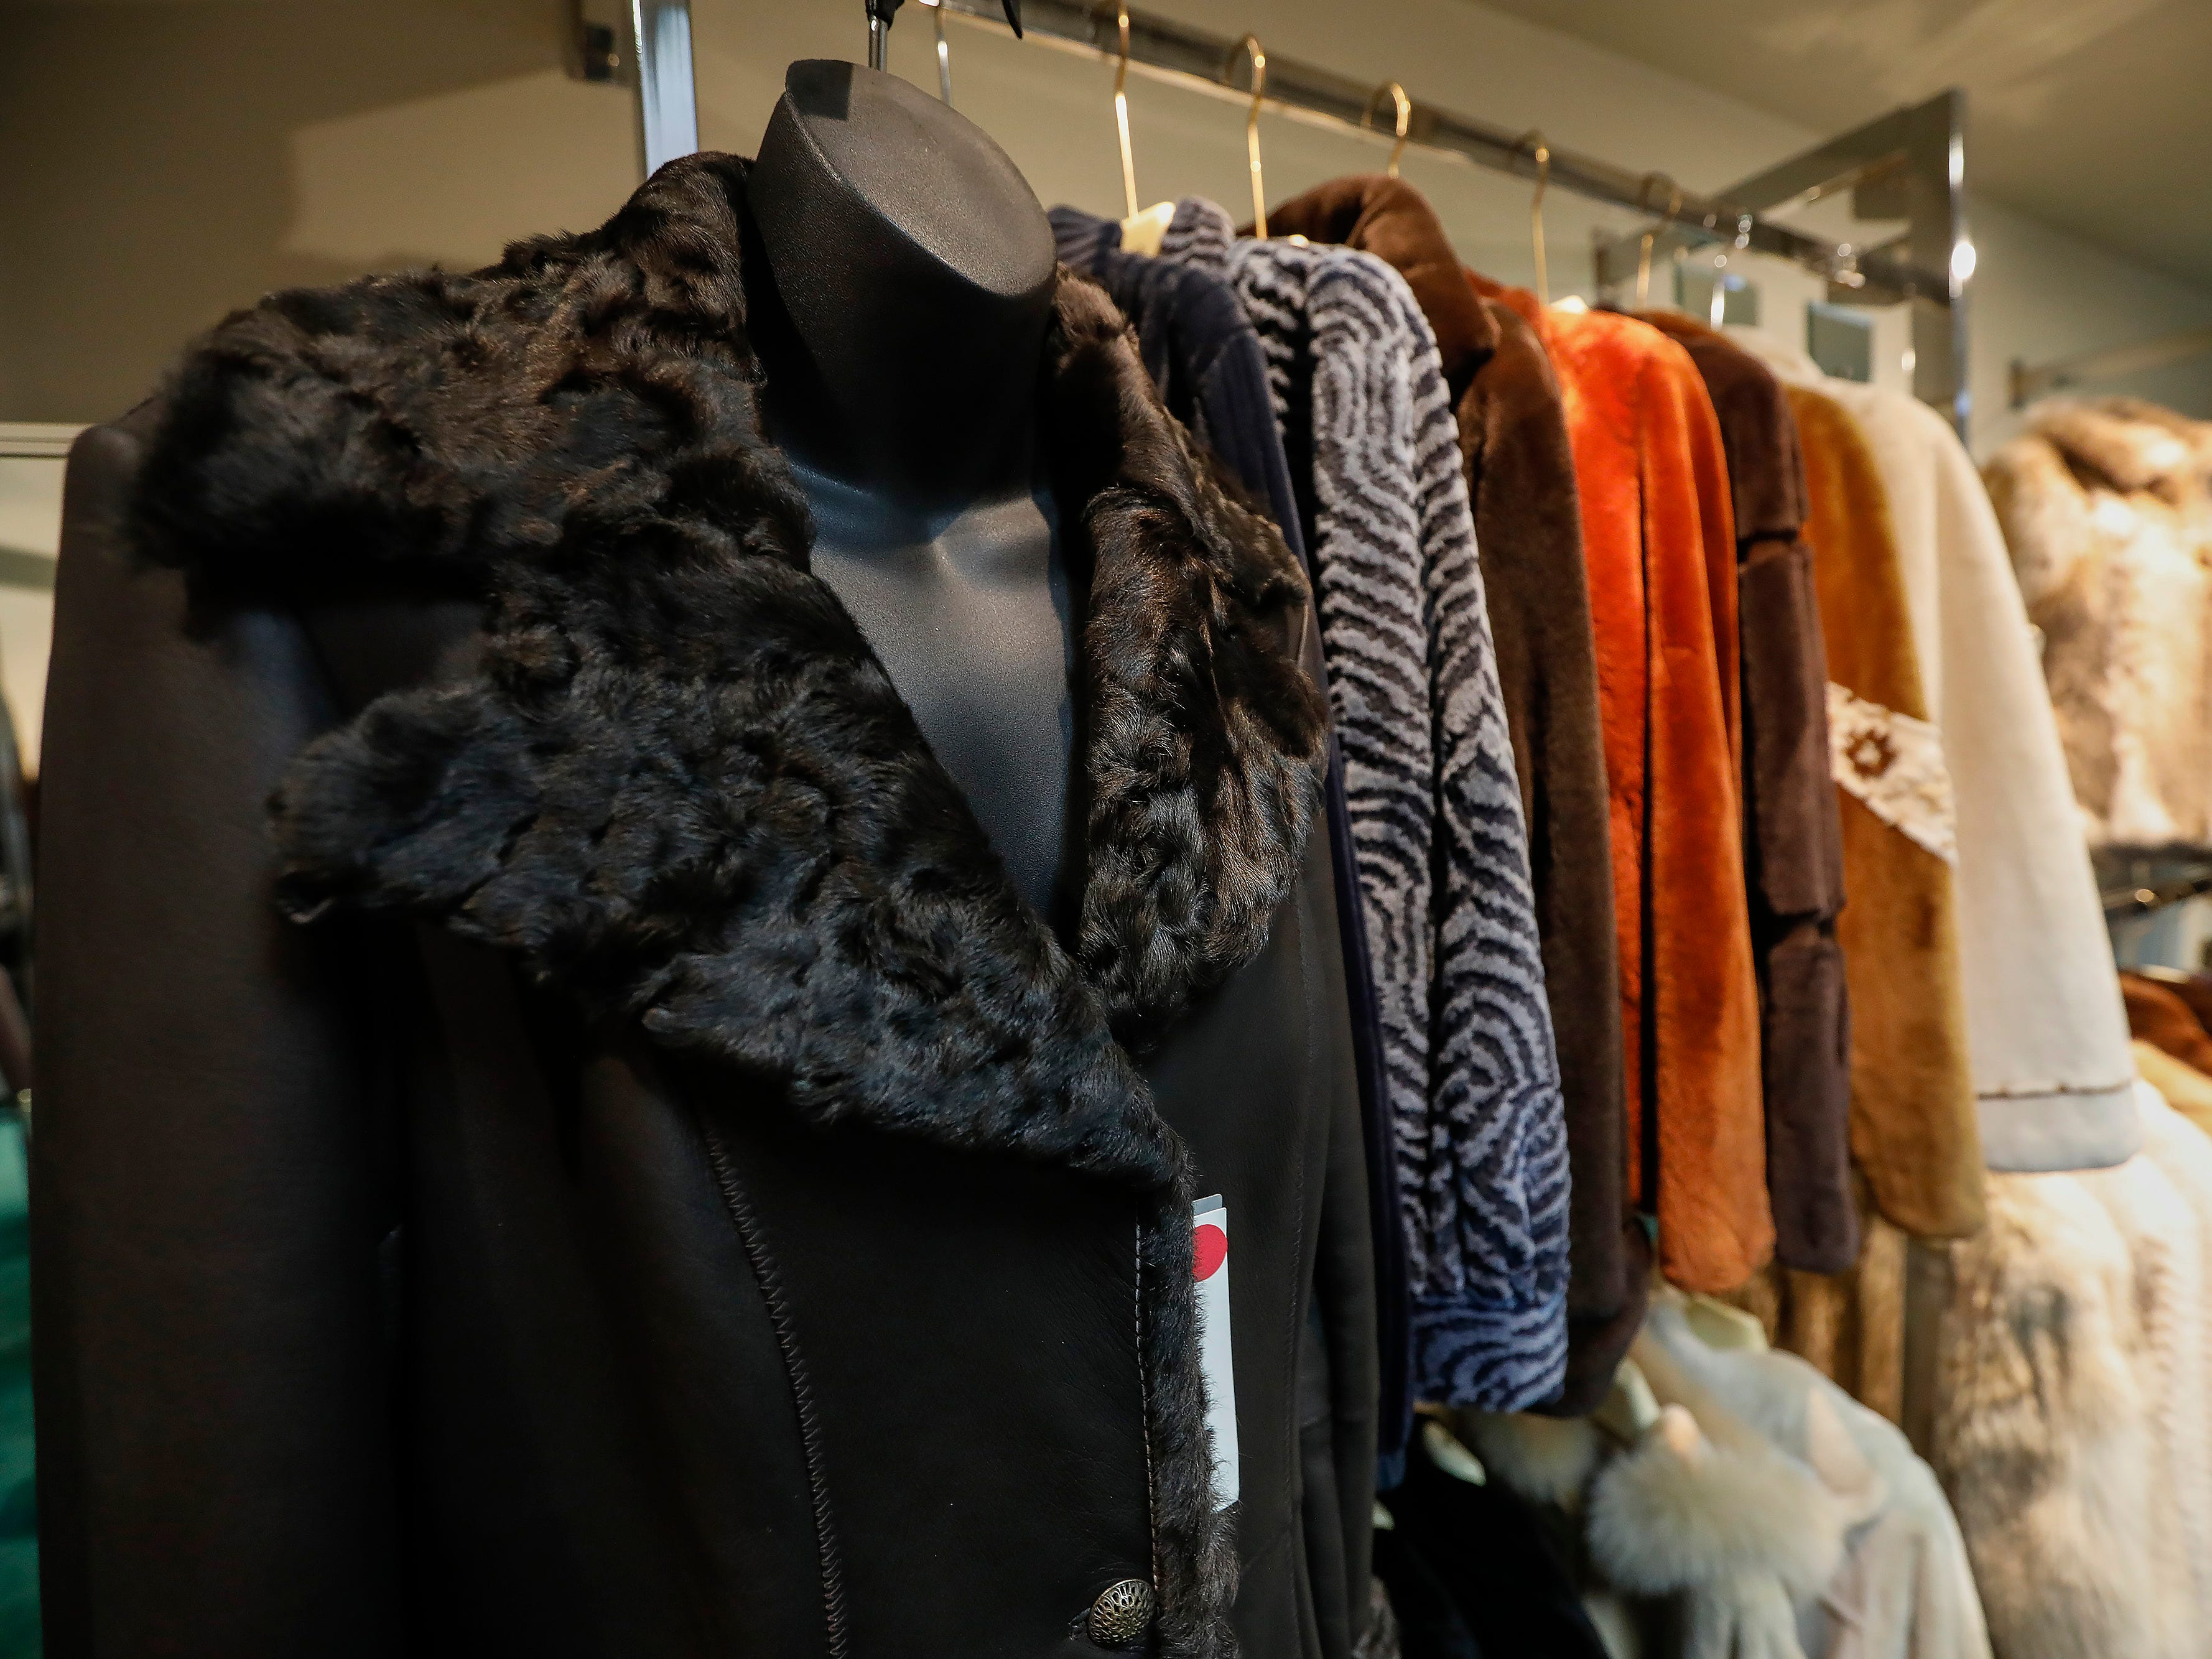 A look at some of the coats for sale at McDaniel Furs, located at 901 S. Glenstone Ave.